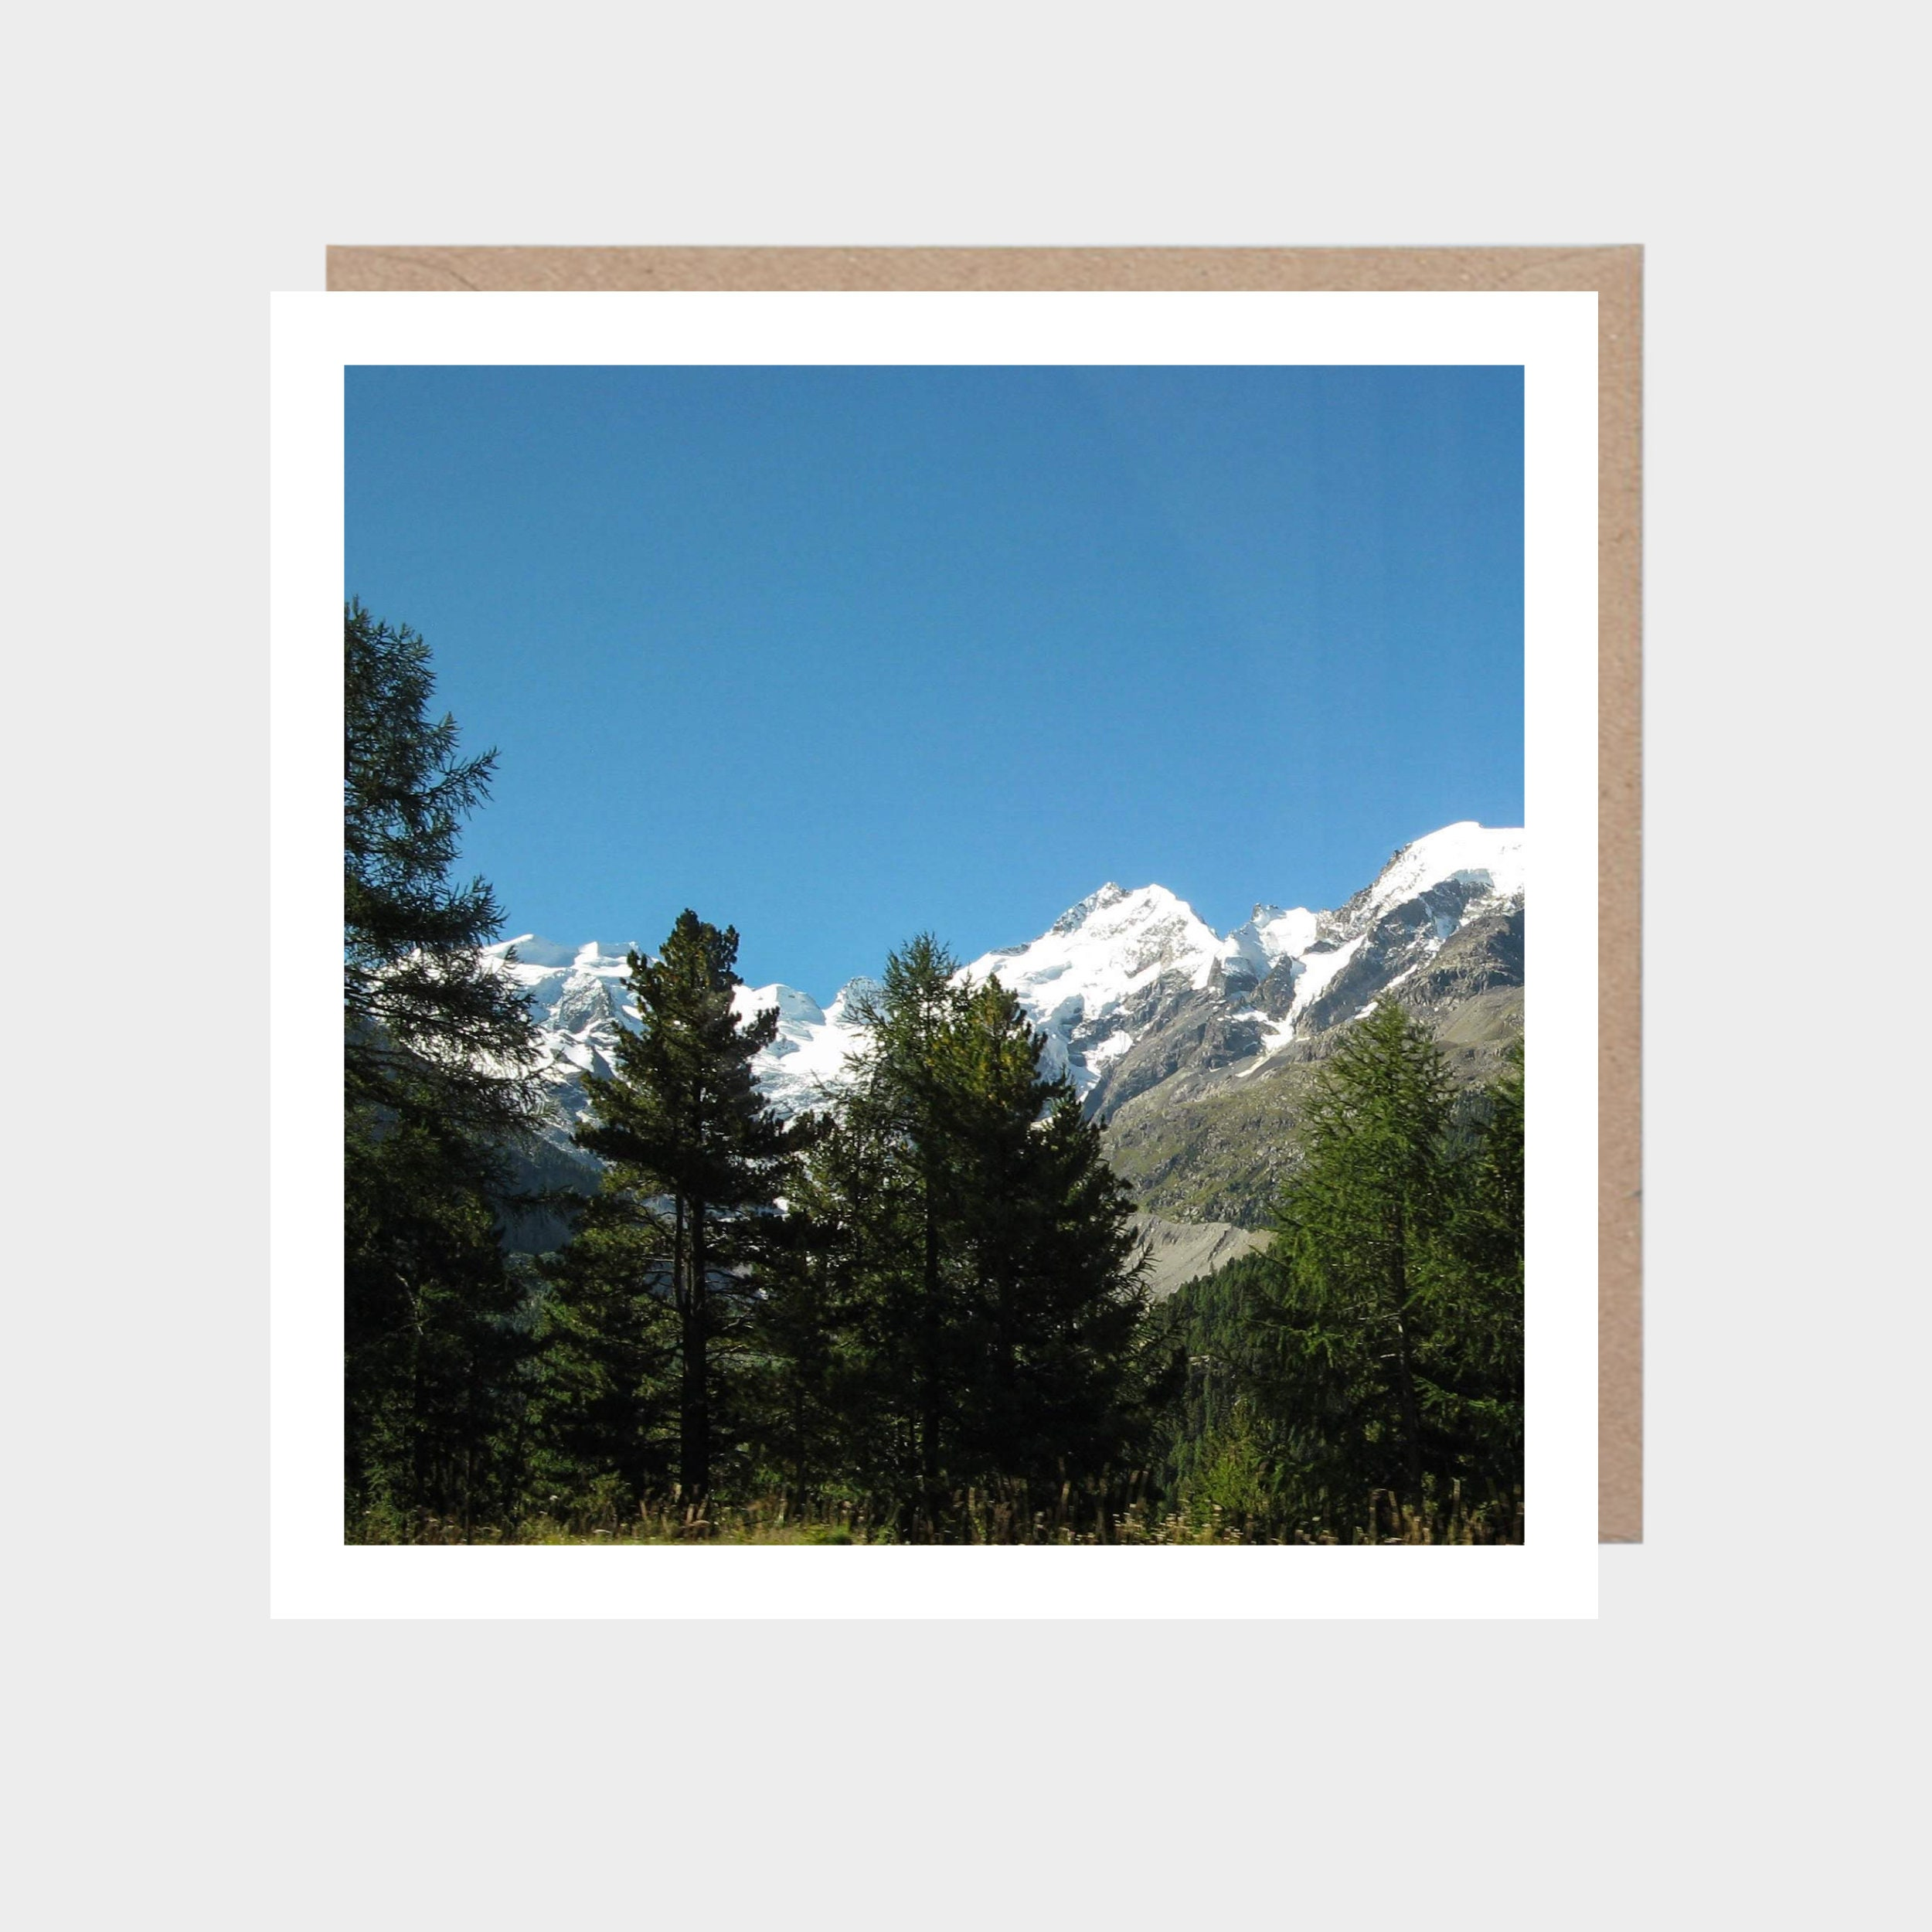 Square card with a photo of The Alps, with a brown kraft envelope